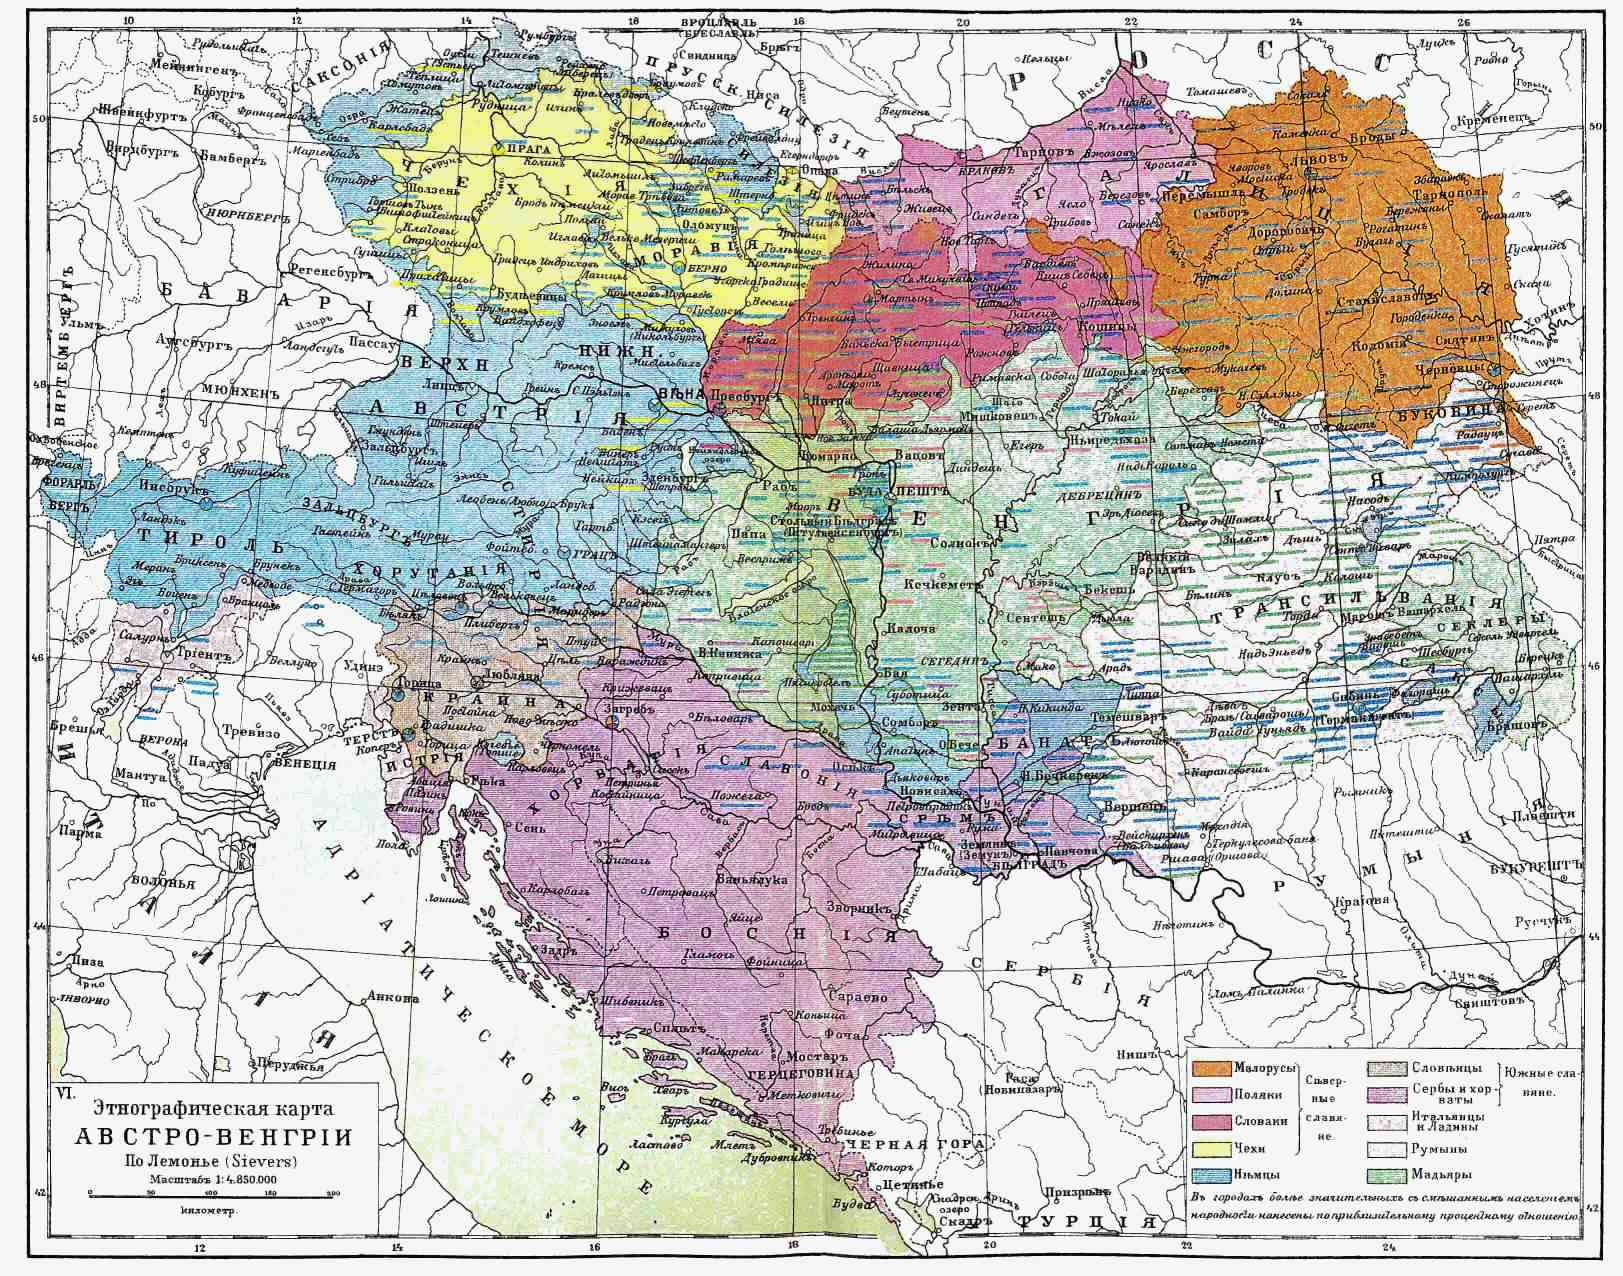 FileAustriaHungary Ethnic Mapjpg Wikimedia Commons - Map of austria hungary 1900 1907